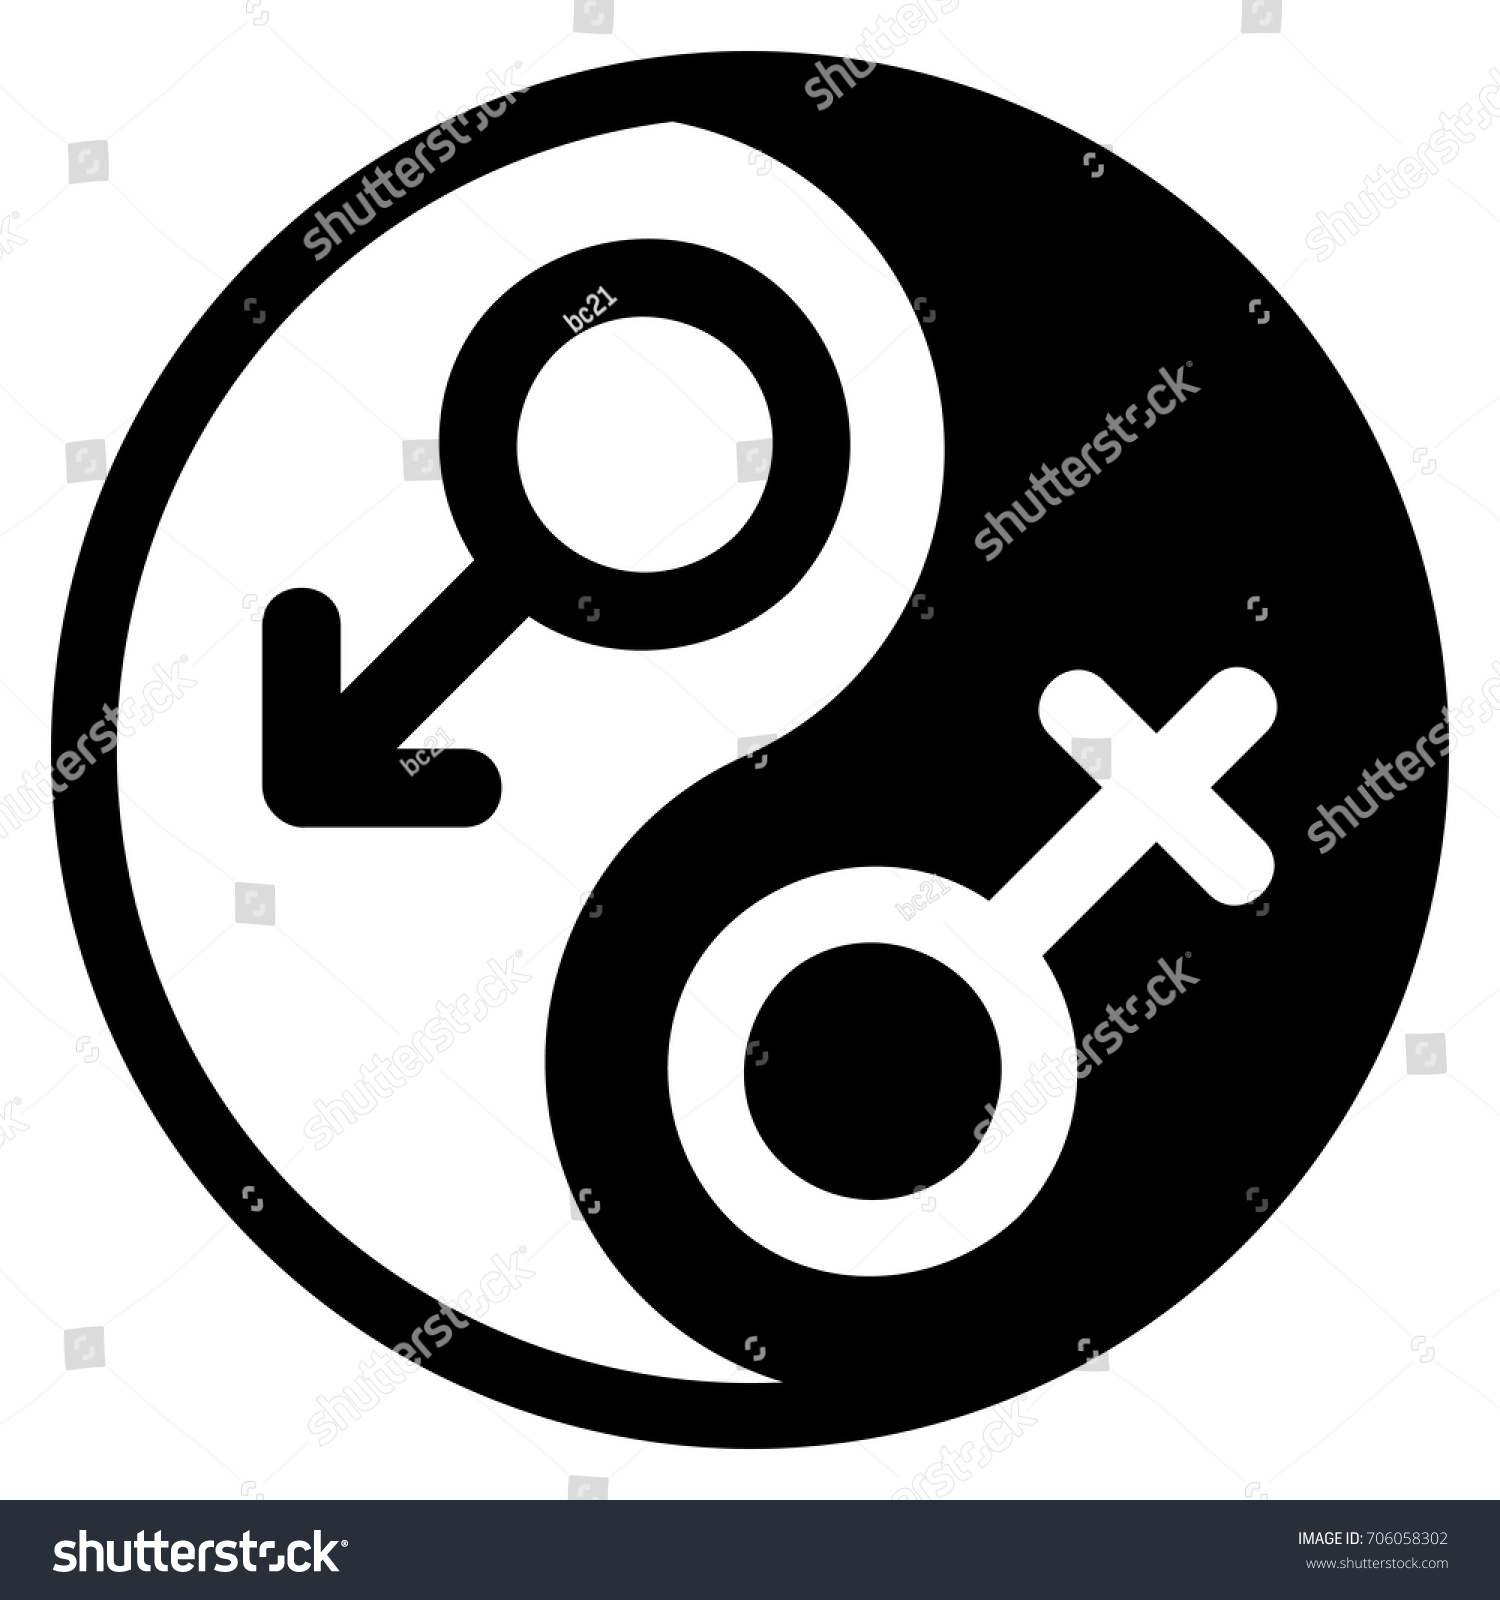 Black white yin yang logo gender stock vector 706058302 shutterstock black and white yin yang logo gender signs male female biocorpaavc